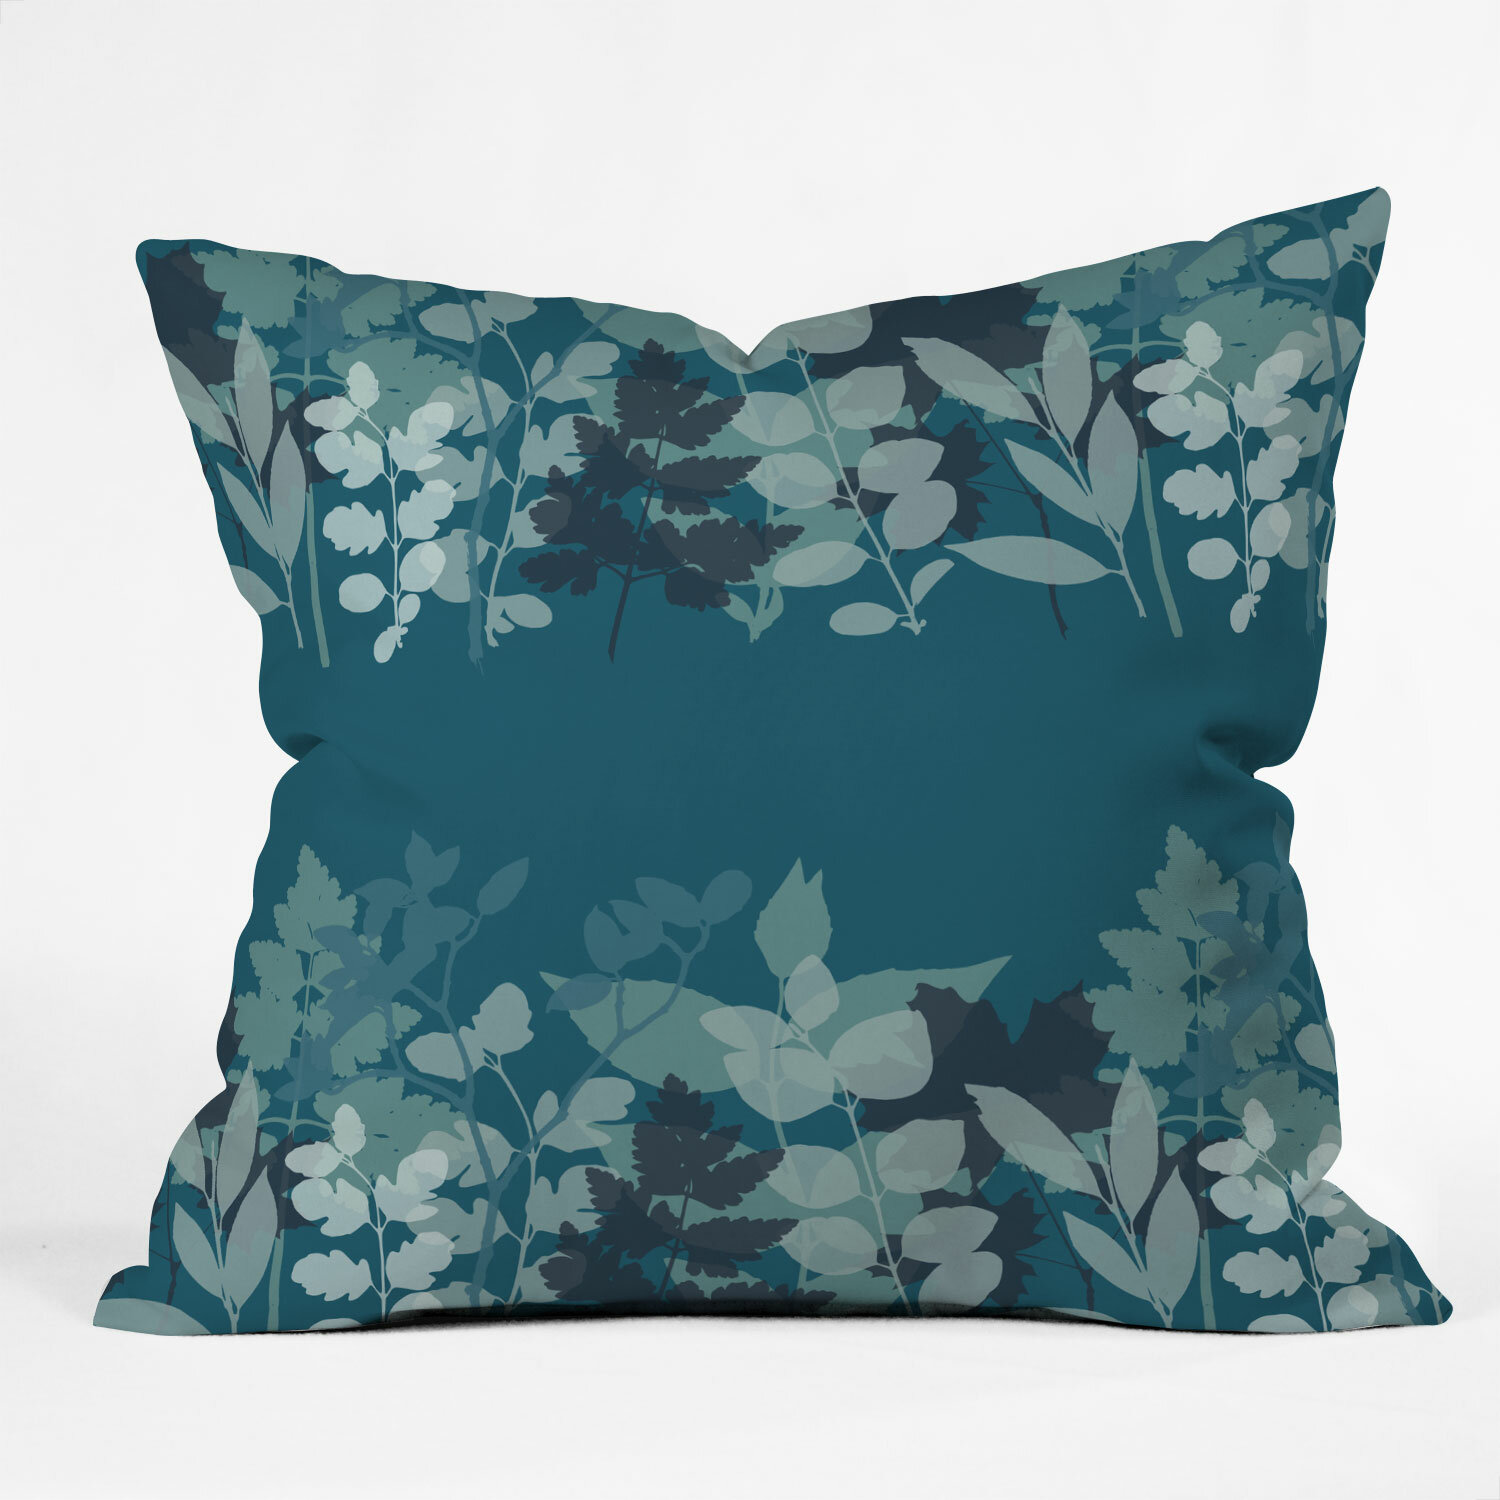 East Urban Home Mareike Boehmer Leaves Row Throw Pillow Wayfair